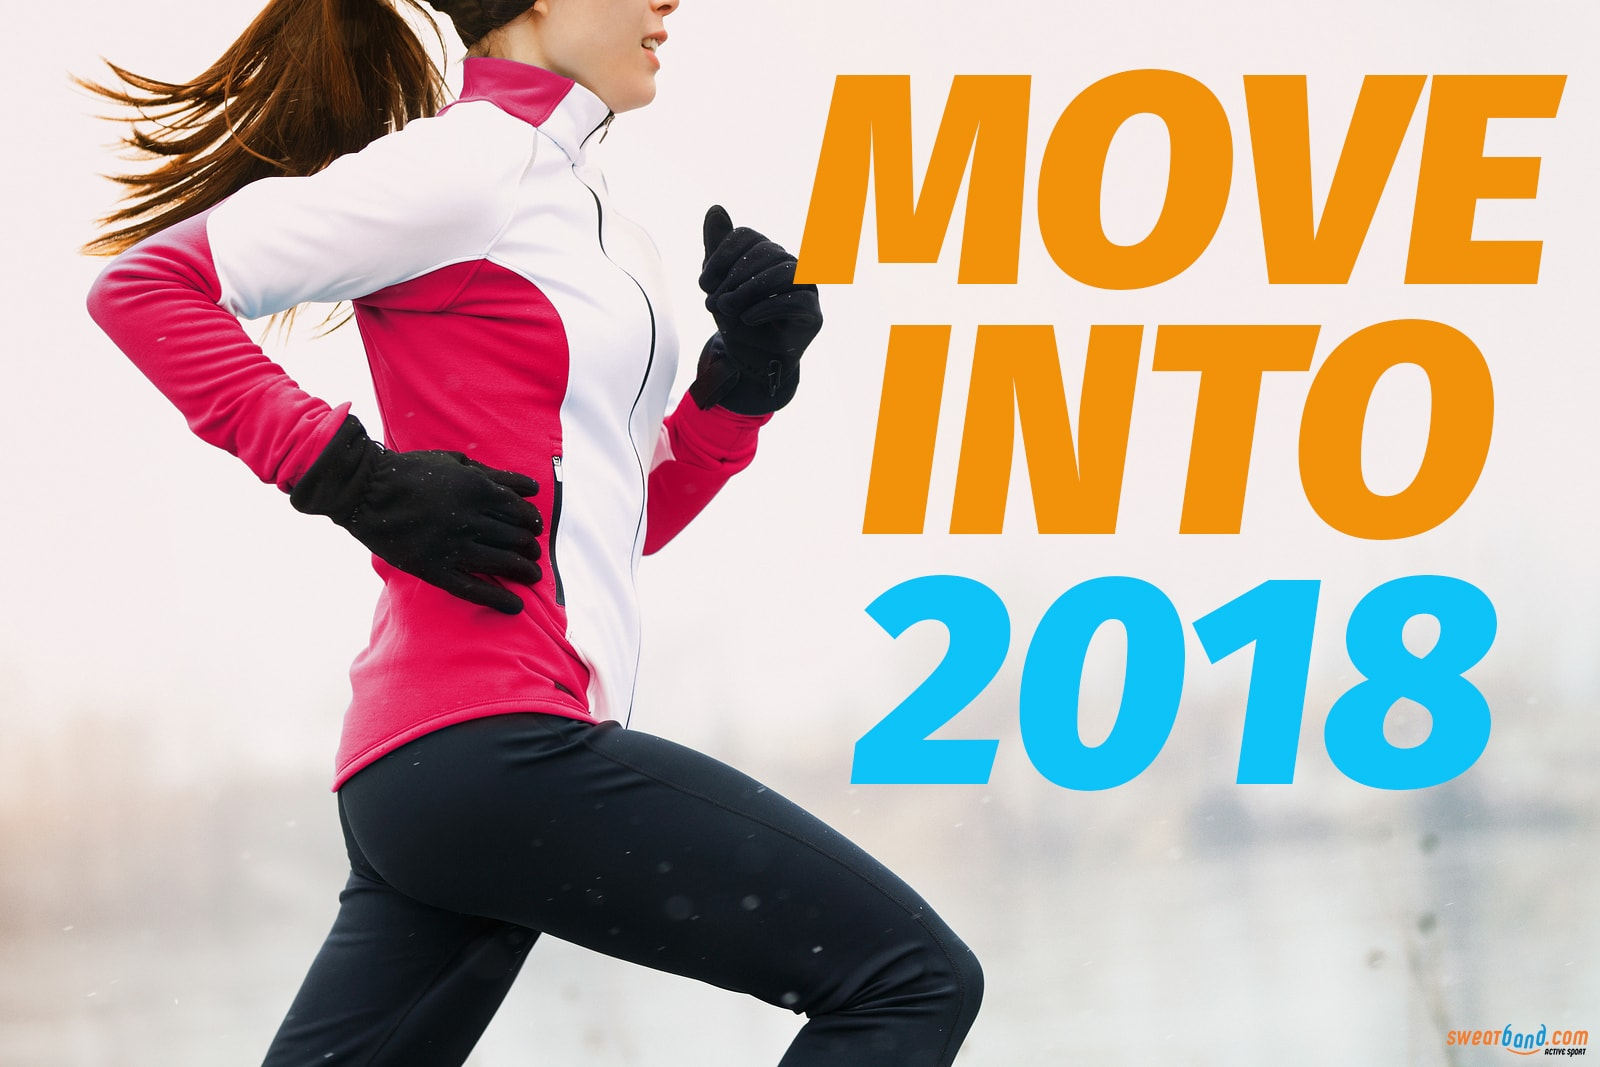 Read our post for how to move more in 2018 and stay active